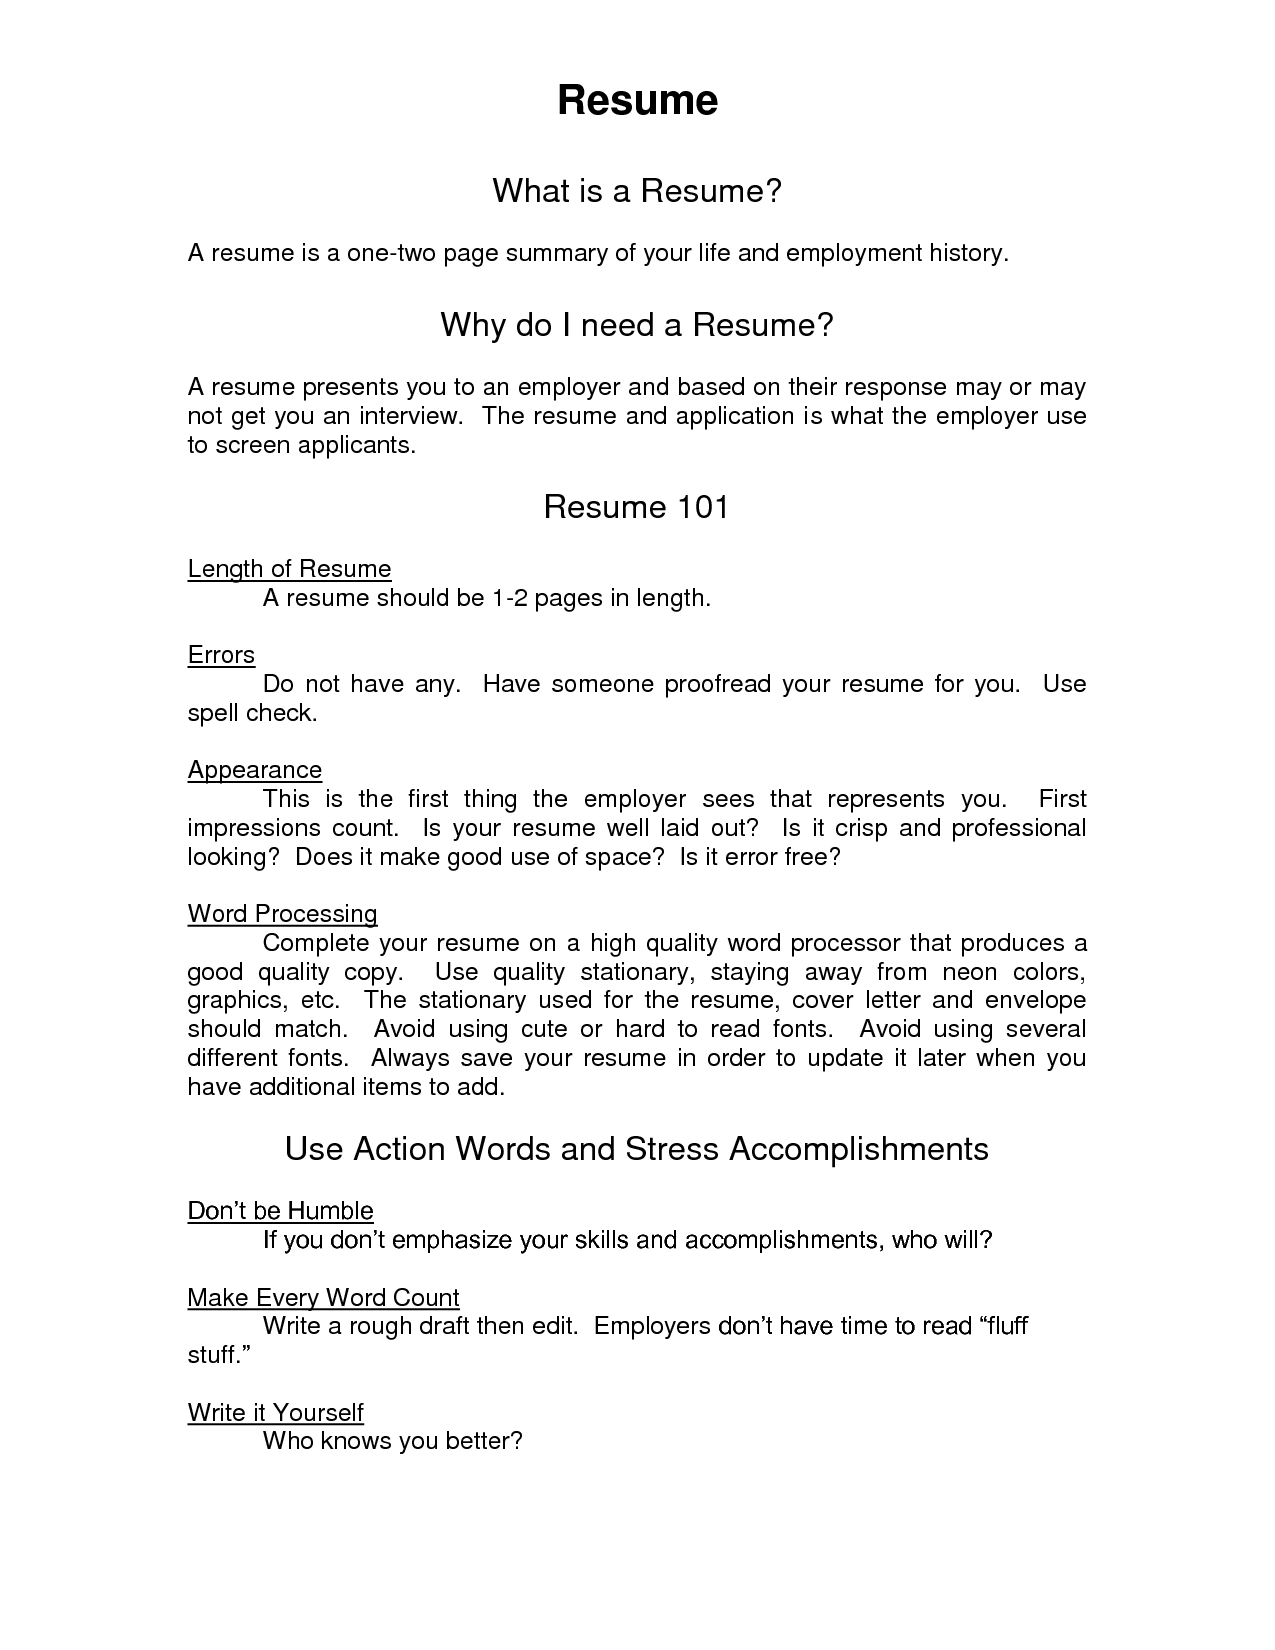 009 What Does The Spanish Word Essay Mean Resume Template Templates Free Sample And Intended Aqa Examples In Example Of Re Ap Ib Extended Gcse Language Paper About Outstanding Ese Full